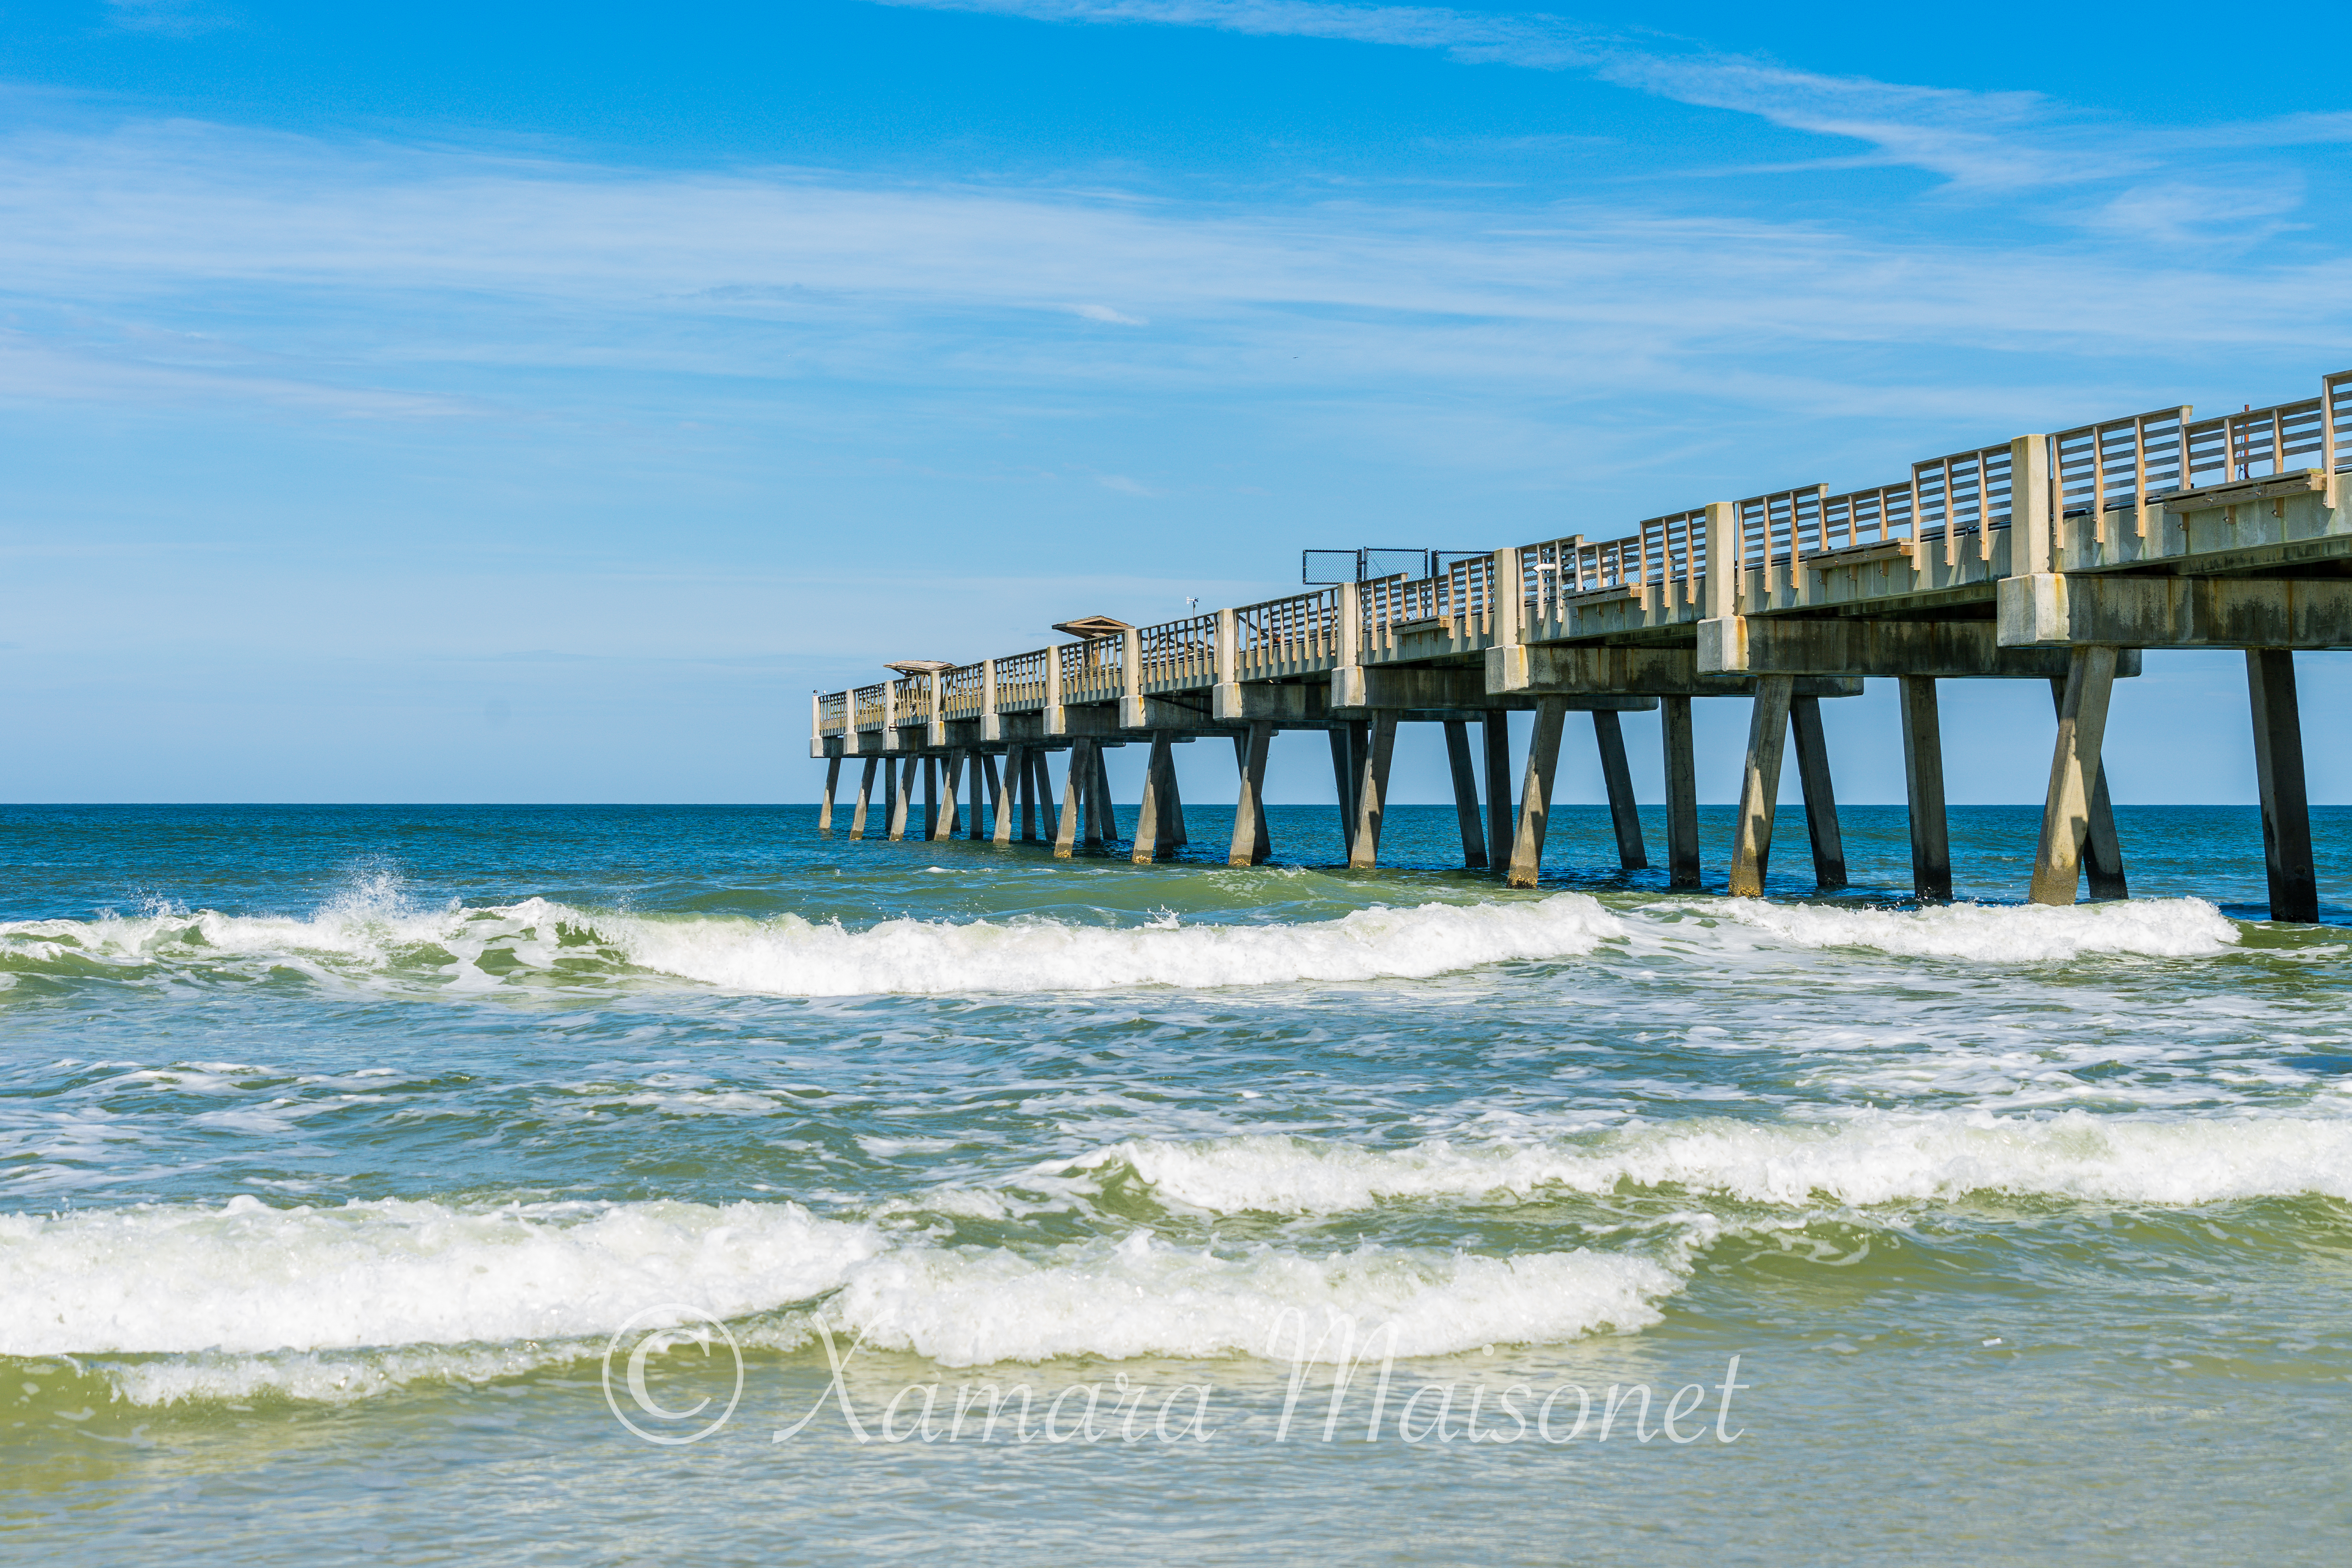 A day in Jacksonville Beach